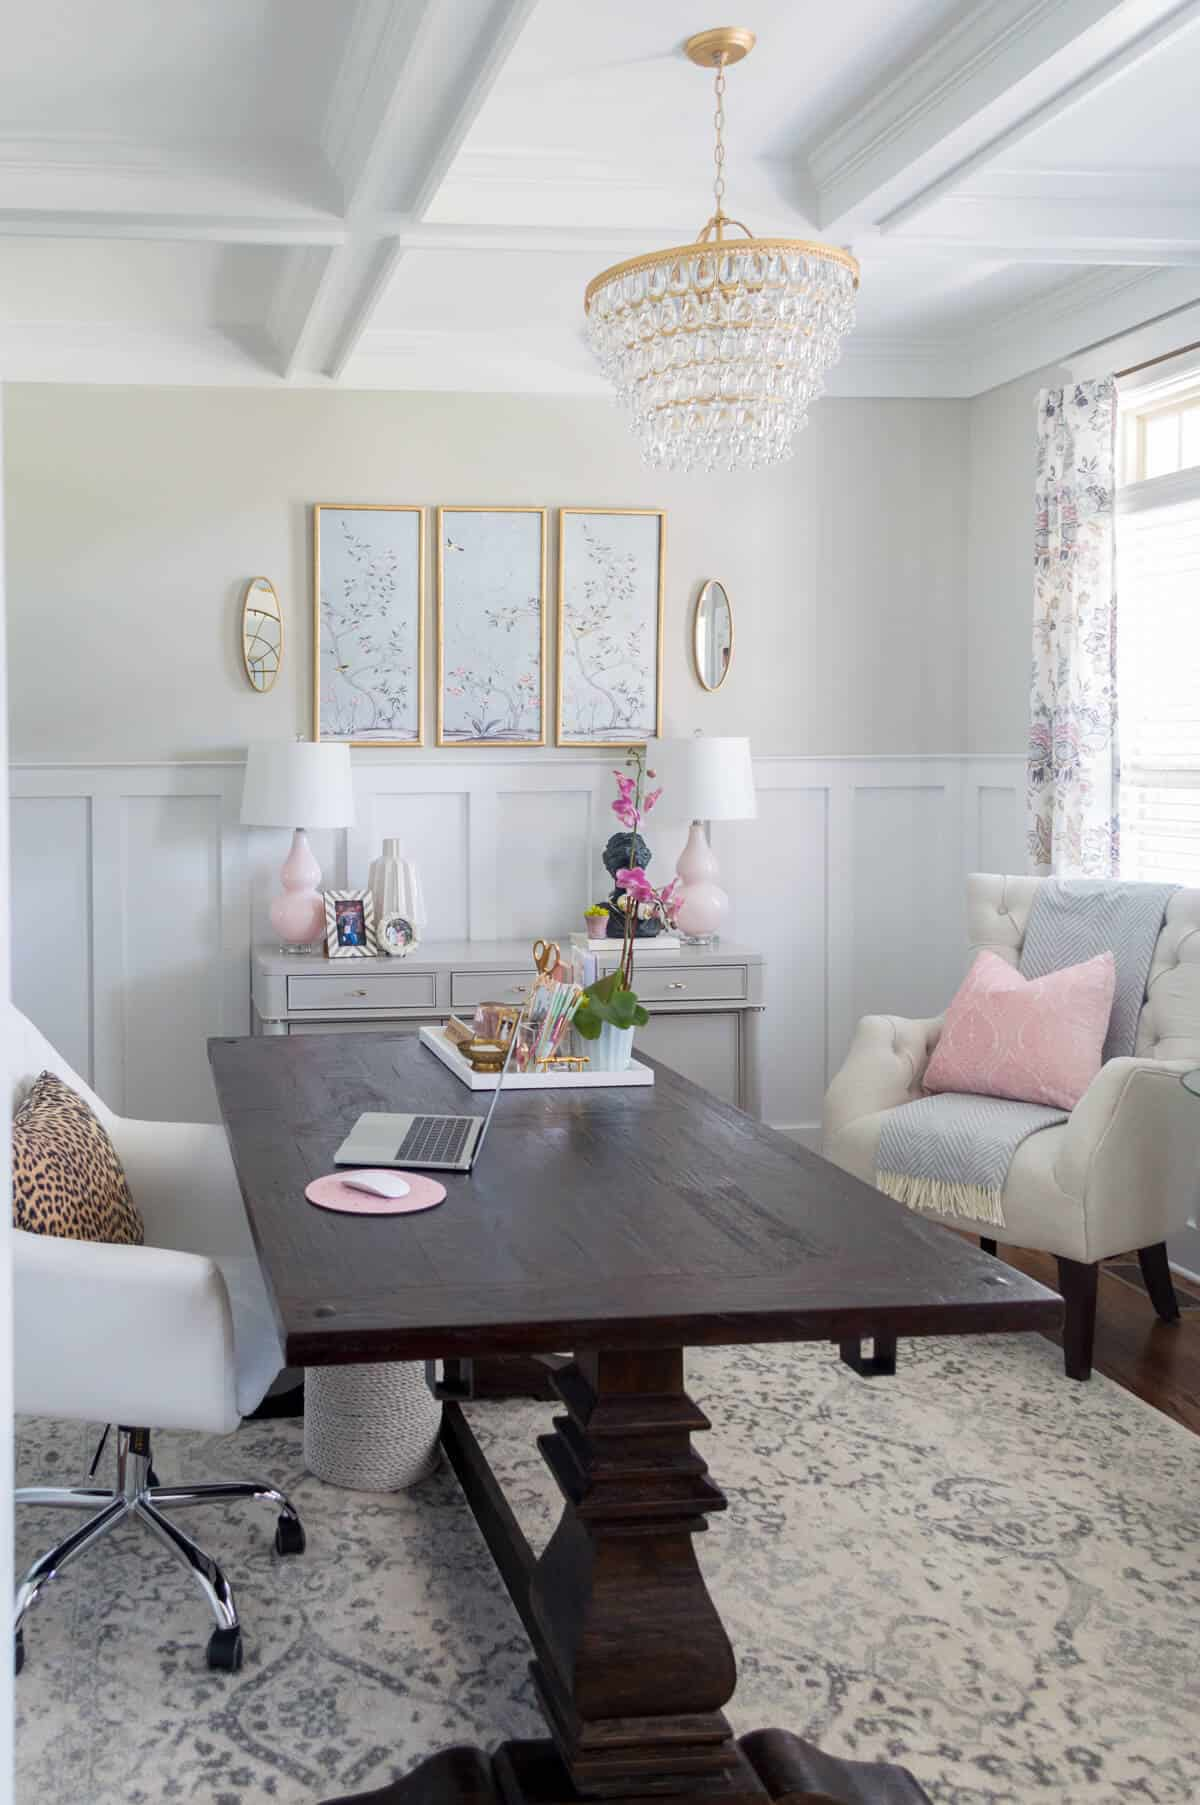 Pair lavender bits throughout the space if you do not want to paint your entire room a lavender hue.